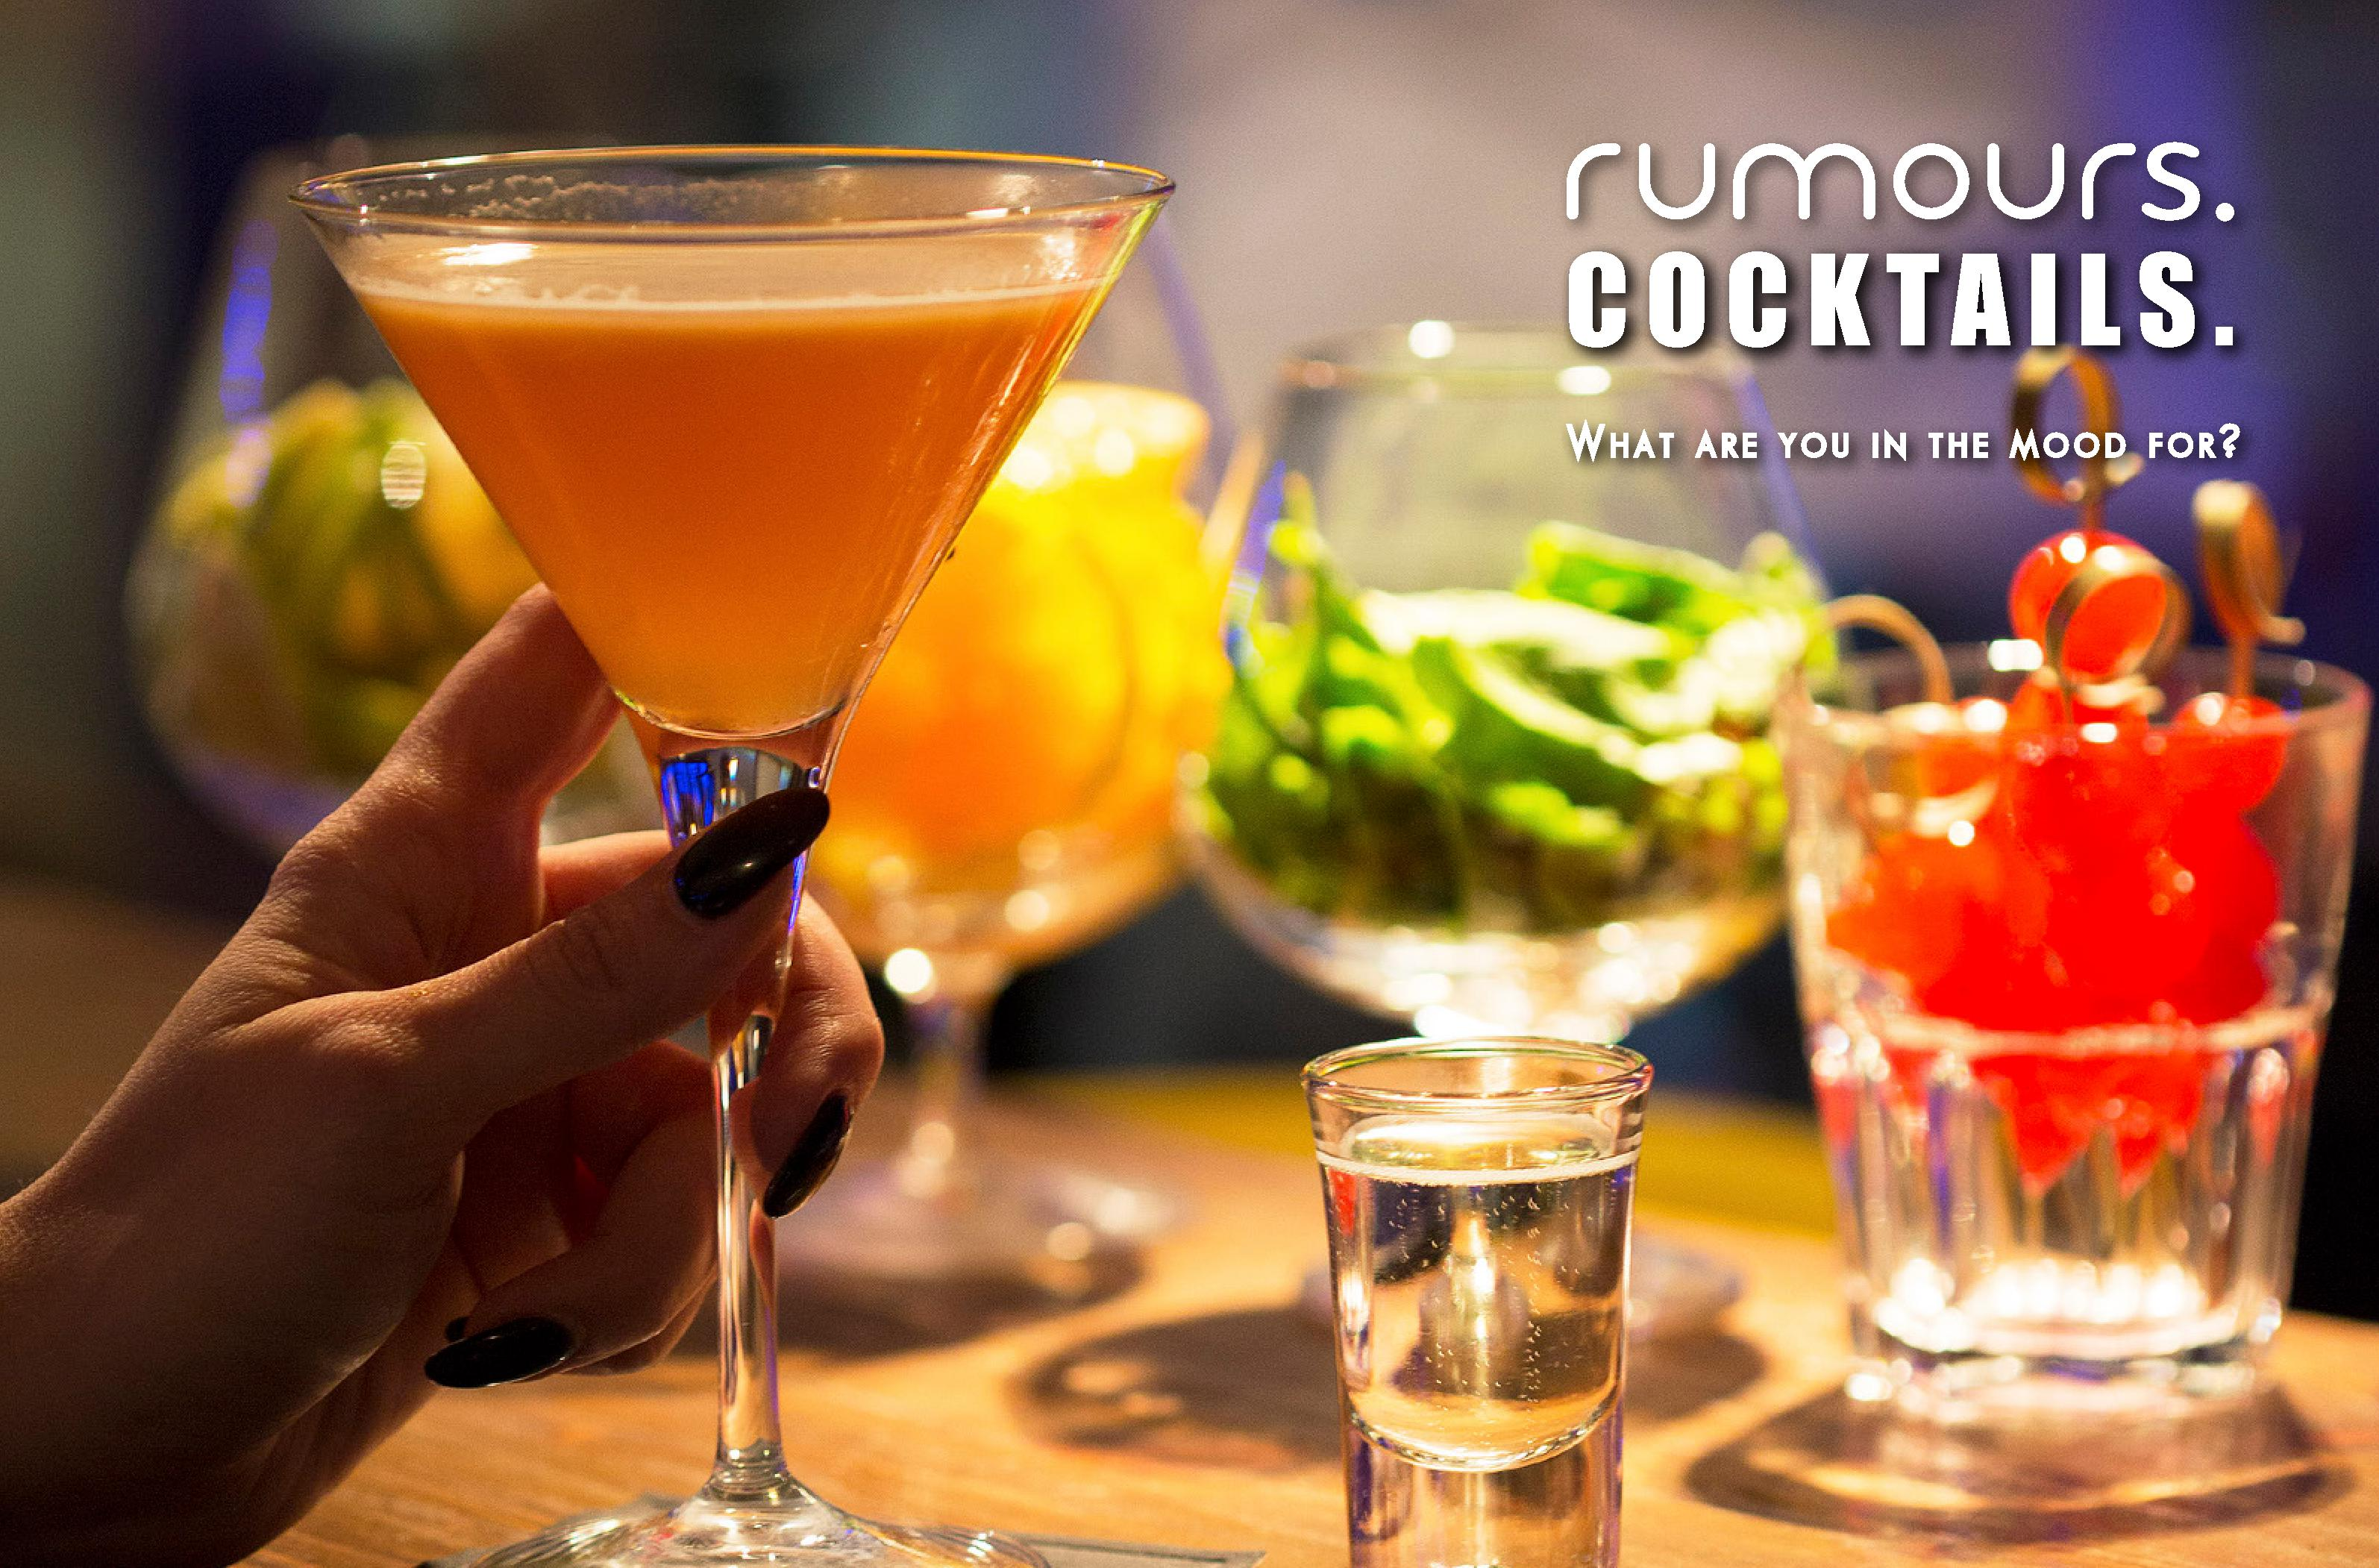 Cocktails Image 0e907-cocktails-final-small.jpg